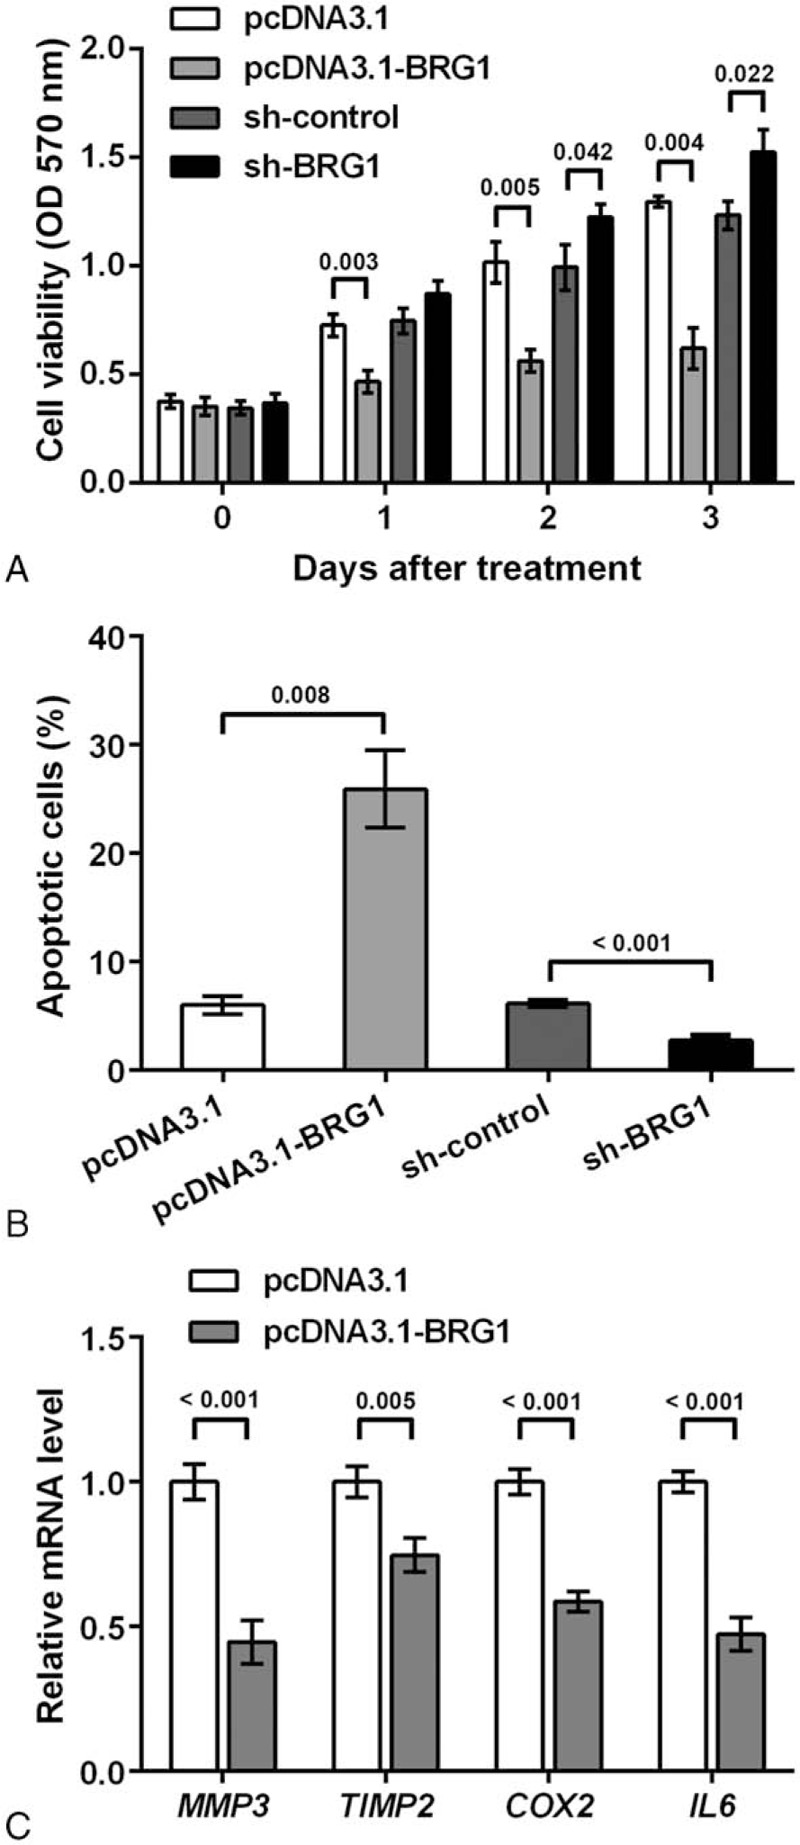 Effects of Brahma-related gene 1 (BRG1) on viability, apoptosis, and inflammatory factor expression in rheumatoid fibroblast-like synoviocyte MH7A cells. MH7A cells were transfected with pcDNA3.1-BRG1 vector to overexpress BRG1 or short hairpin RNA (shRNA) vector of BRG1 (sh-BRG1) to knock down BRG1. Blank vectors pcDNA3.1 and sh-control were transfected in the corresponding control group. (A) BRG1 inhibits cell viability as indicated by optical density (OD) at 570 nm. MTT was performed to detect cell viability at 0, 1, 2, and 3 d post-transfection. (B) BRG1 increases percent of apoptotic cells as quantified by flow cytometry at 48 h post-transfection. (C) BRG1 suppresses the mRNA level of inflammatory factors matrix metallopeptidase 3 ( MMP3 ), TIMP metallopeptidase inhibitor 2 ( TIMP2 ), cyclooxygenase 2 ( COX2 ), and interleukin 6 ( IL6 ) as revealed by qPCR at 48 h post-transfection. P values are indicated. BRG1 = Brahma-related gene 1, COX2 = cyclooxygenase 2, IL6 = interleukin 6, MMP3 = matrix metallopeptidase 3, MTT = 3-(4,5-dimethylthiazol-2-yl)-2,5-diphenyltetrazolium bromide , OD = optical density, qPCR = quantitative polymerase chain reaction, shRNA = short hairpin RNA, TIMP2 = TIMP metallopeptidase inhibitor 2.